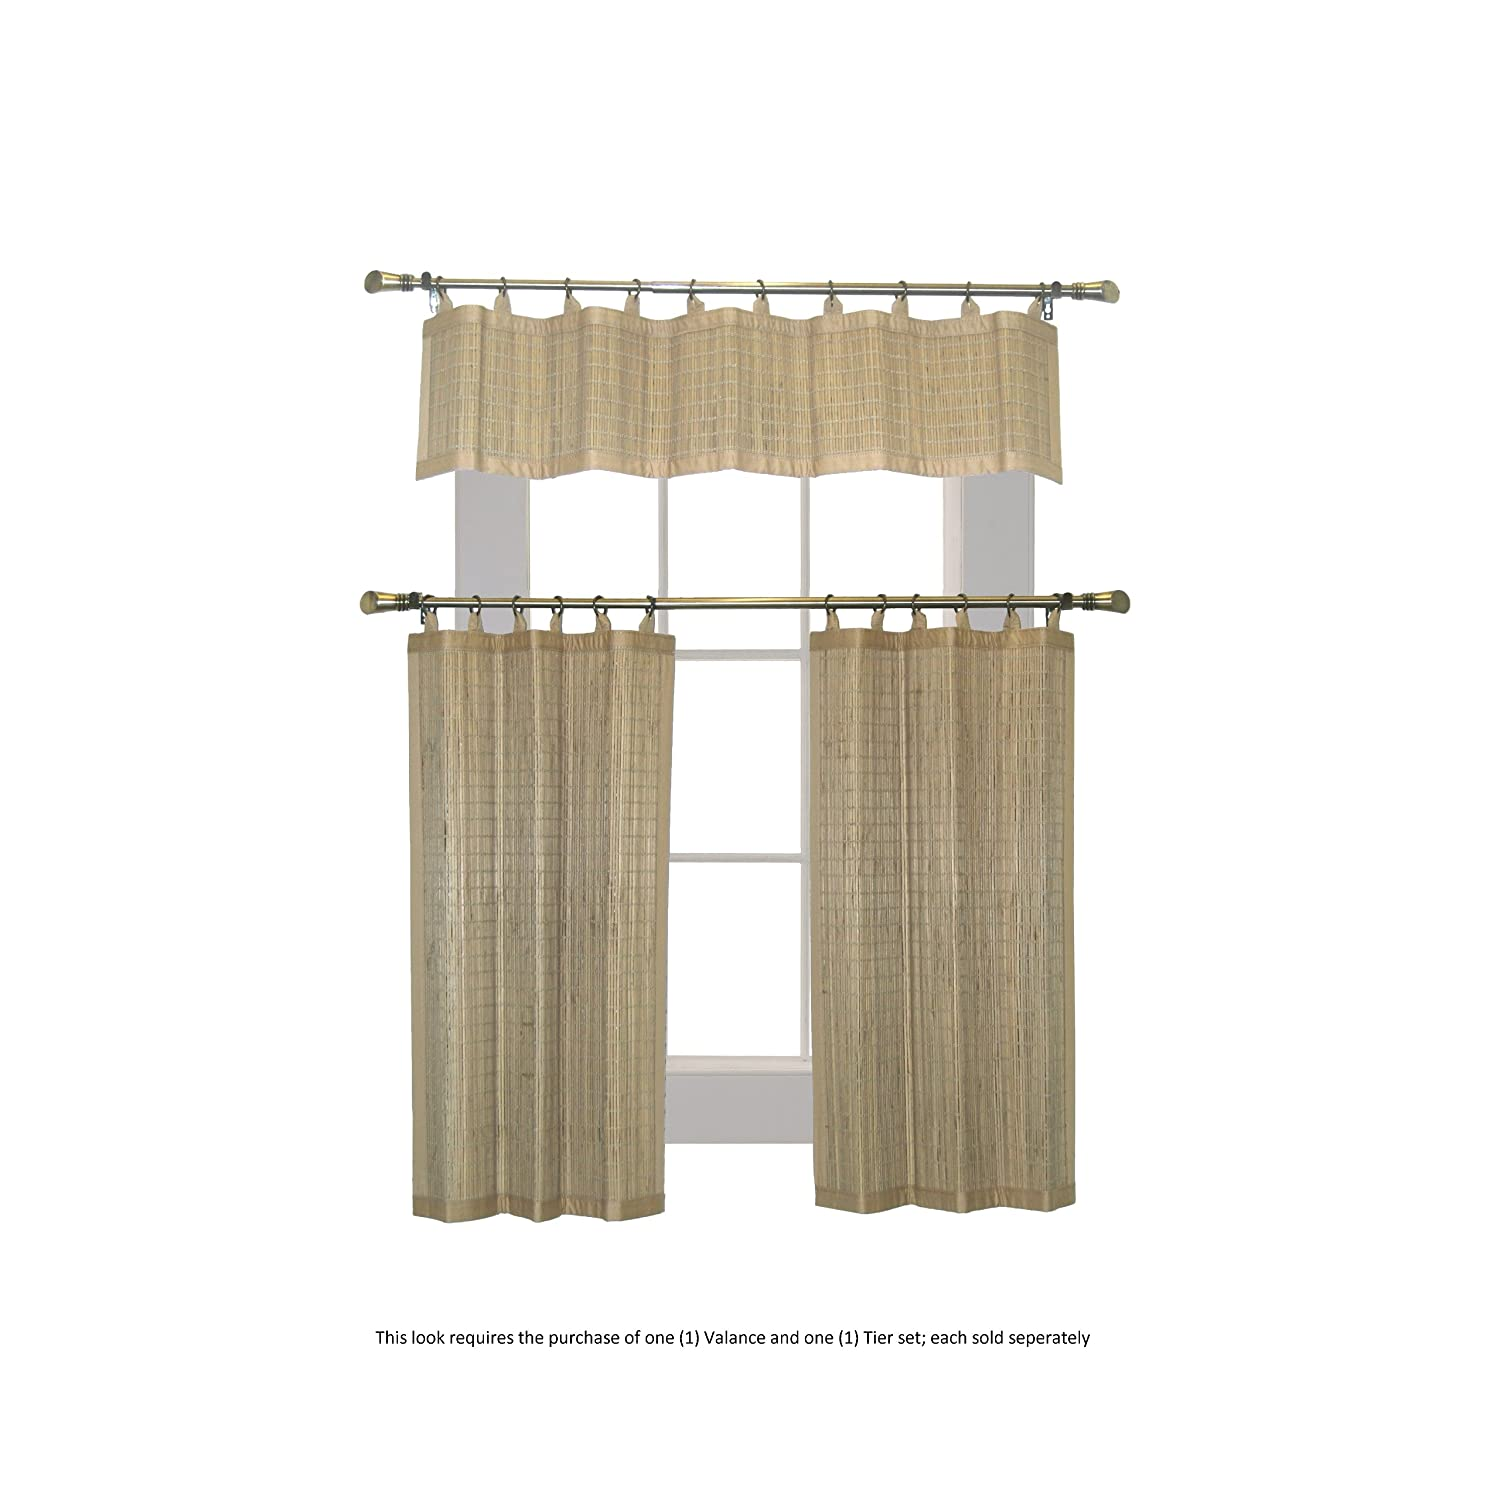 Driftwood Versailles Home Fashions BRP054836-25 Bamboo Ring Top Curtain BRP05 2-Piece Ring Top Tier Set 48 by 36-Inch